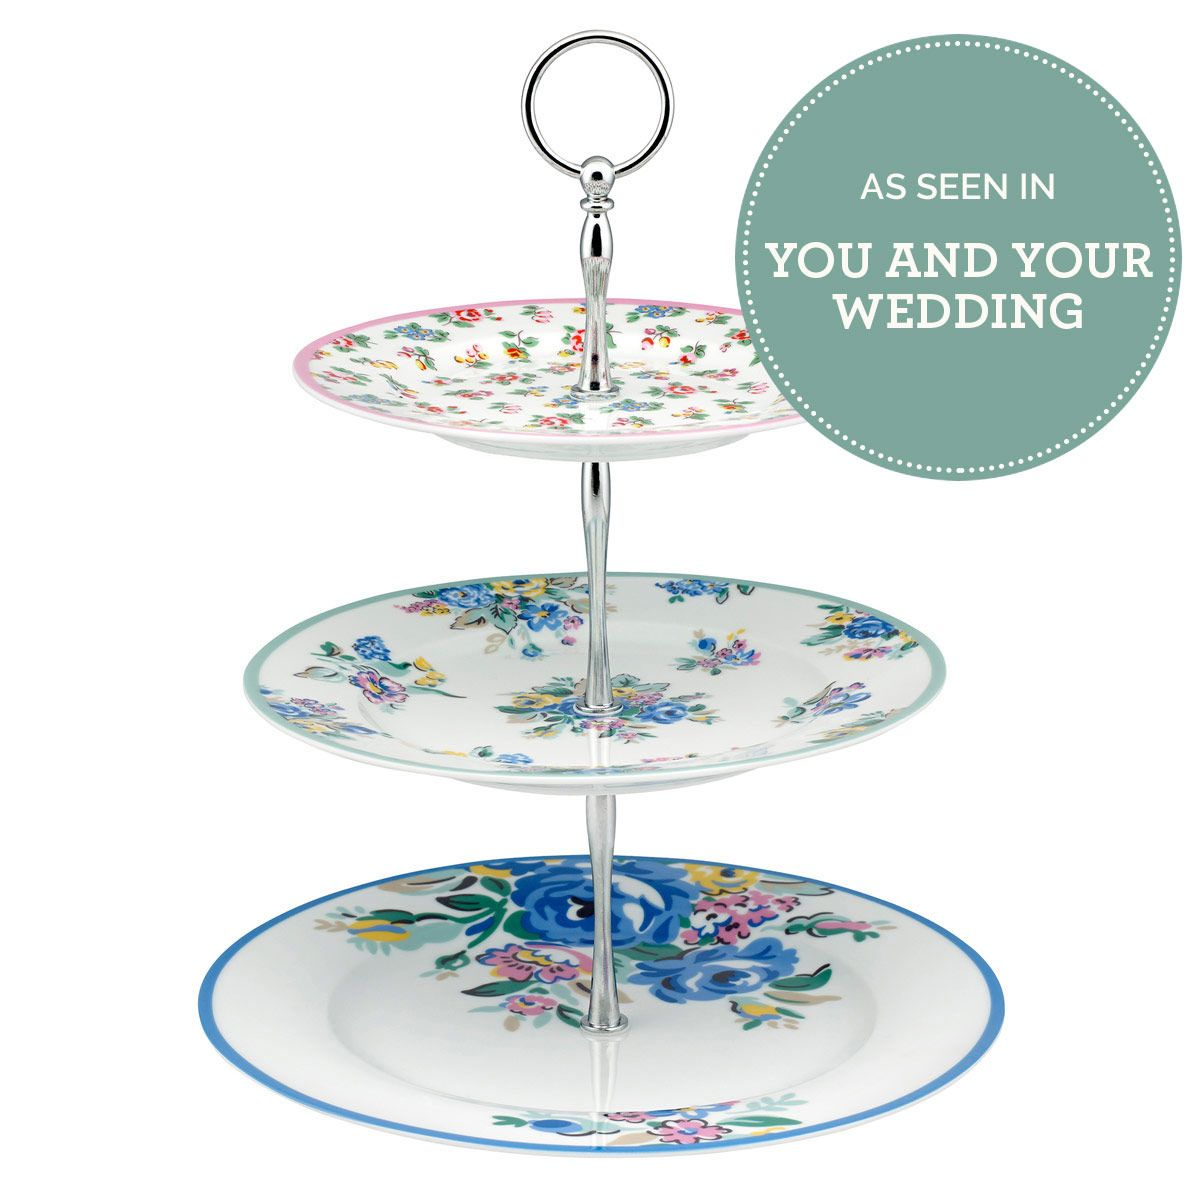 Highgate rose tier cake stand afternoon tea cathkidston home